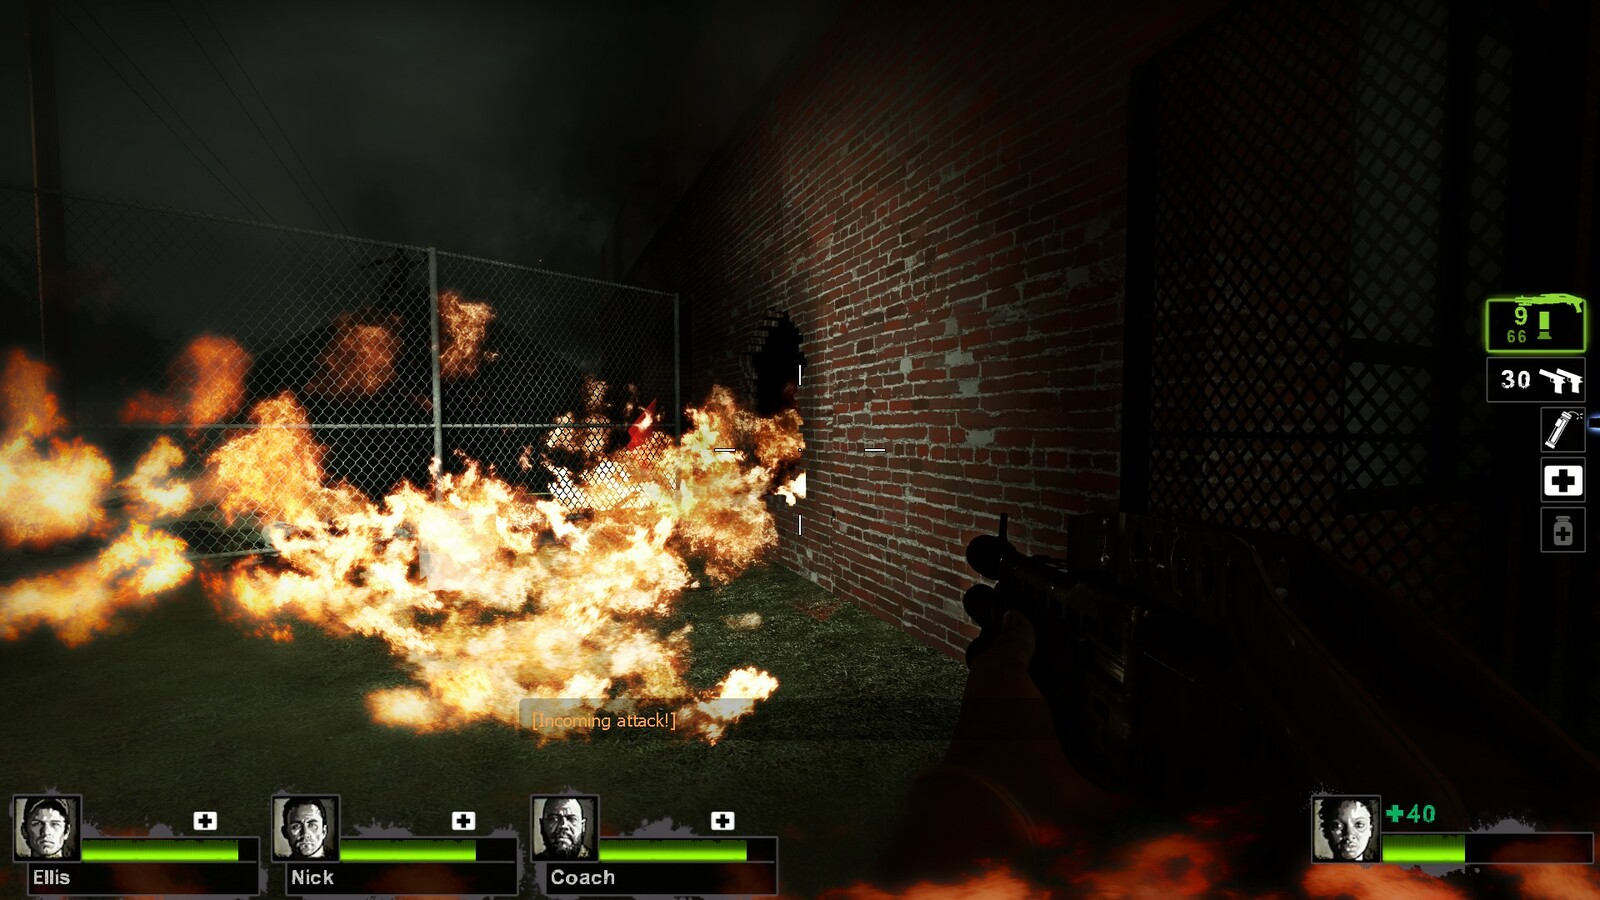 Shooting the barrels causes a fire and a horde of zombies to rush the player's position.